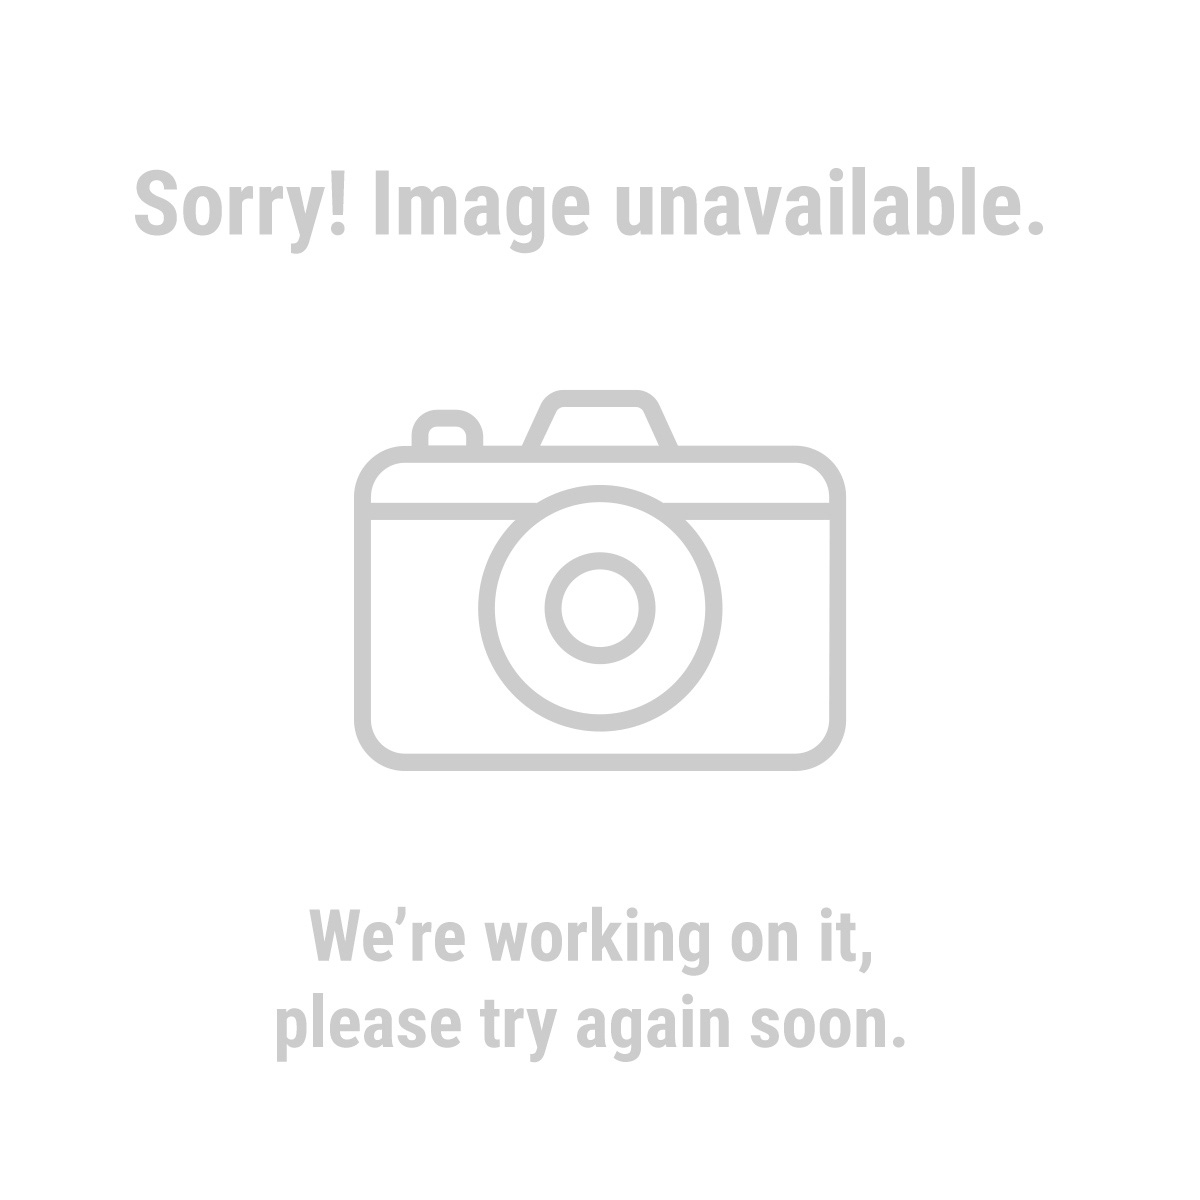 Warrior® 68113 13 Piece Bi-metal Hole Saw Set